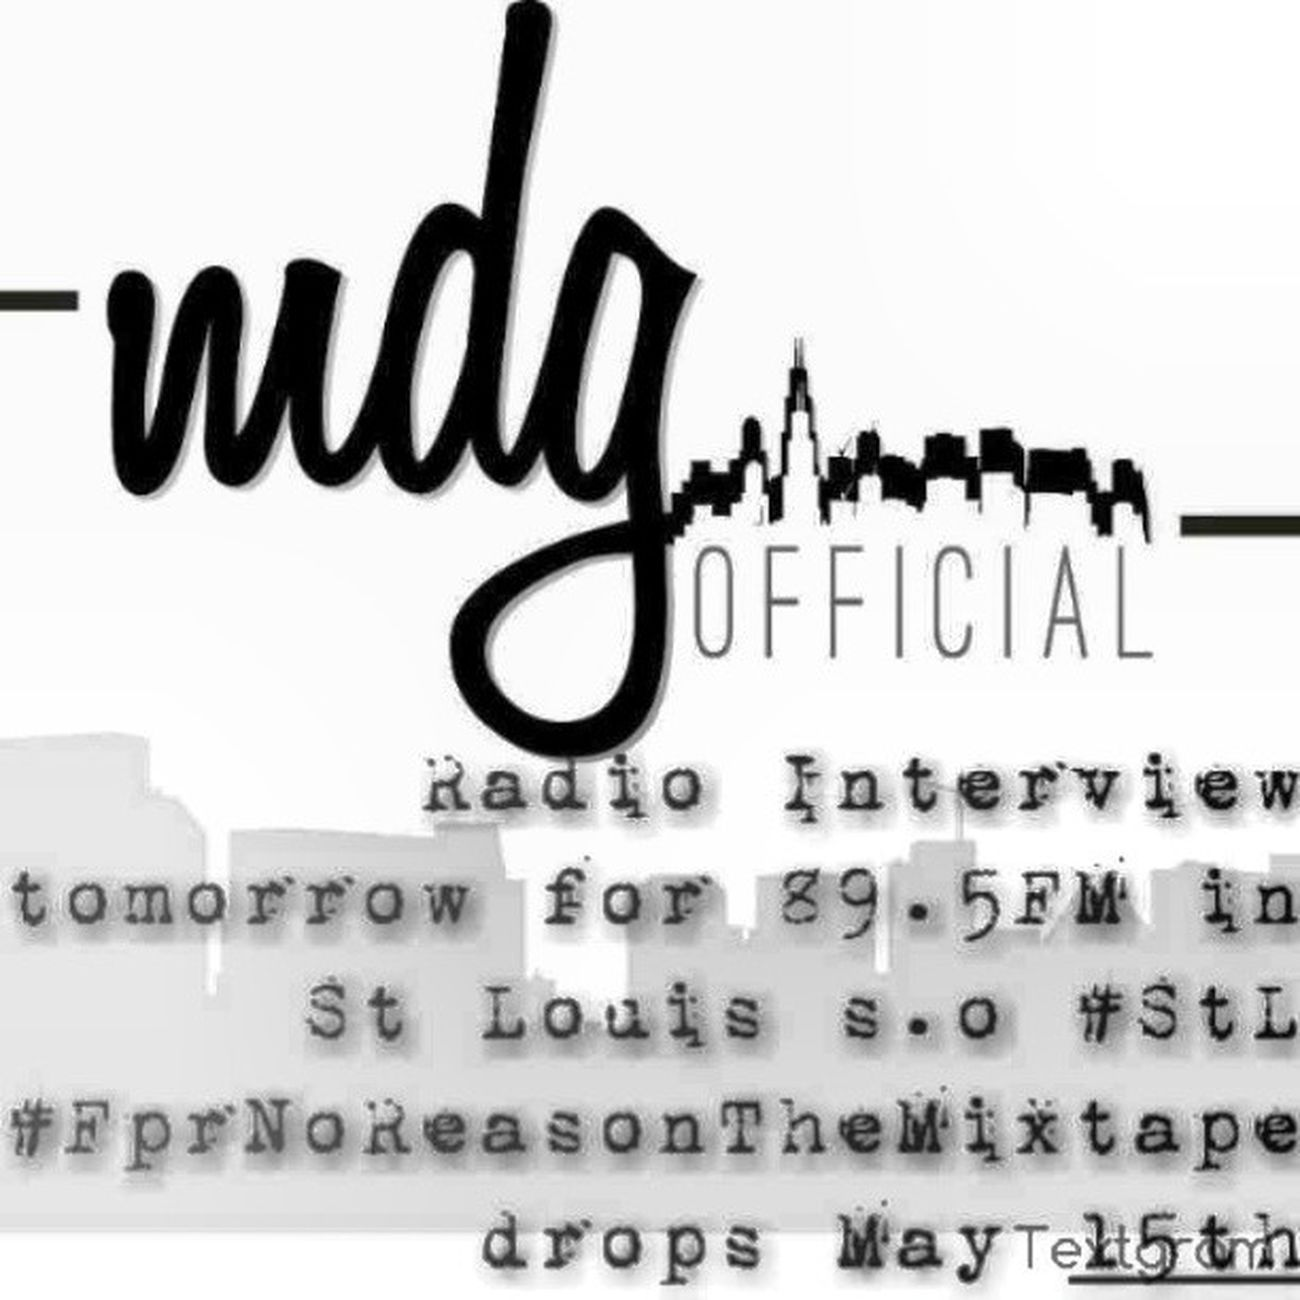 Tune into WhoBetta radio out of Stl Sat. 12-3 EveryWeekend ForNoReasonTheMixtape MDGOfficial